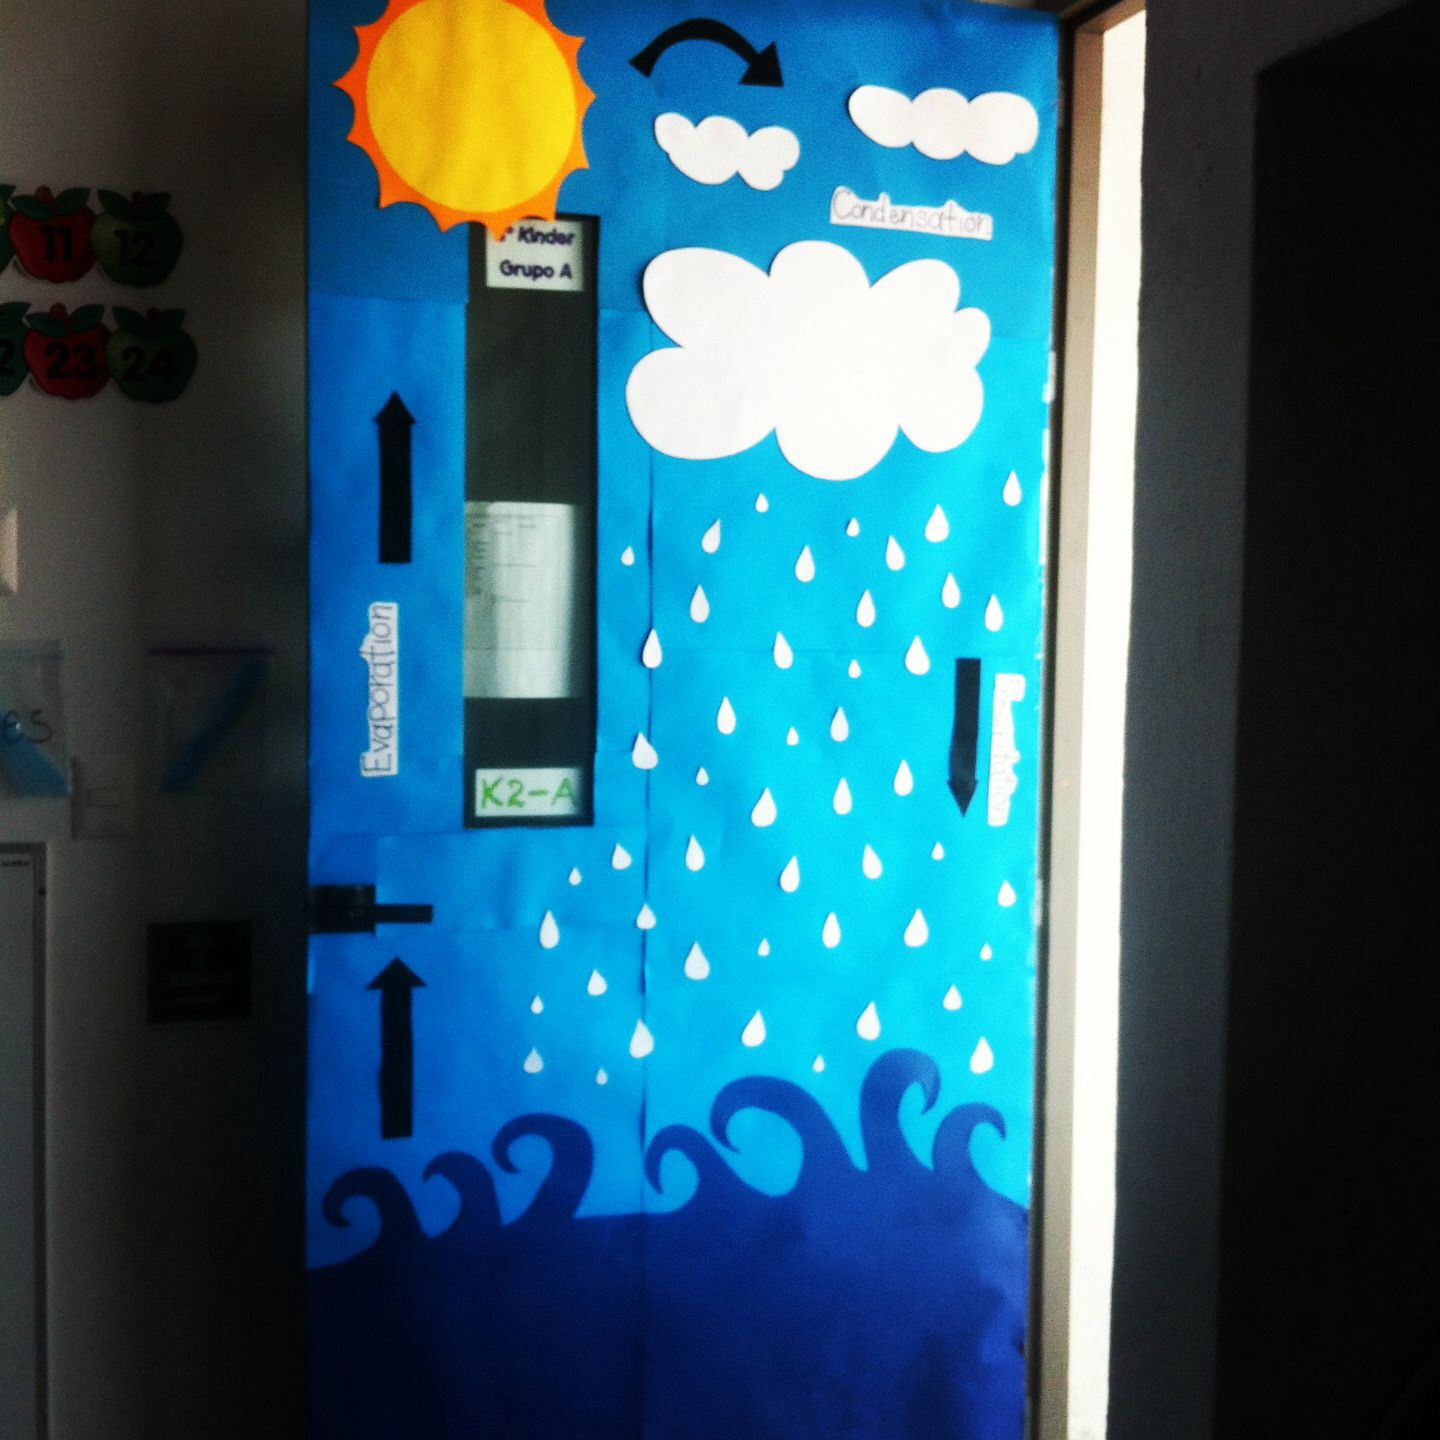 Water Cycle Door I Love The Idea Of Making A New Theme For The Door Every Month Or Week Or